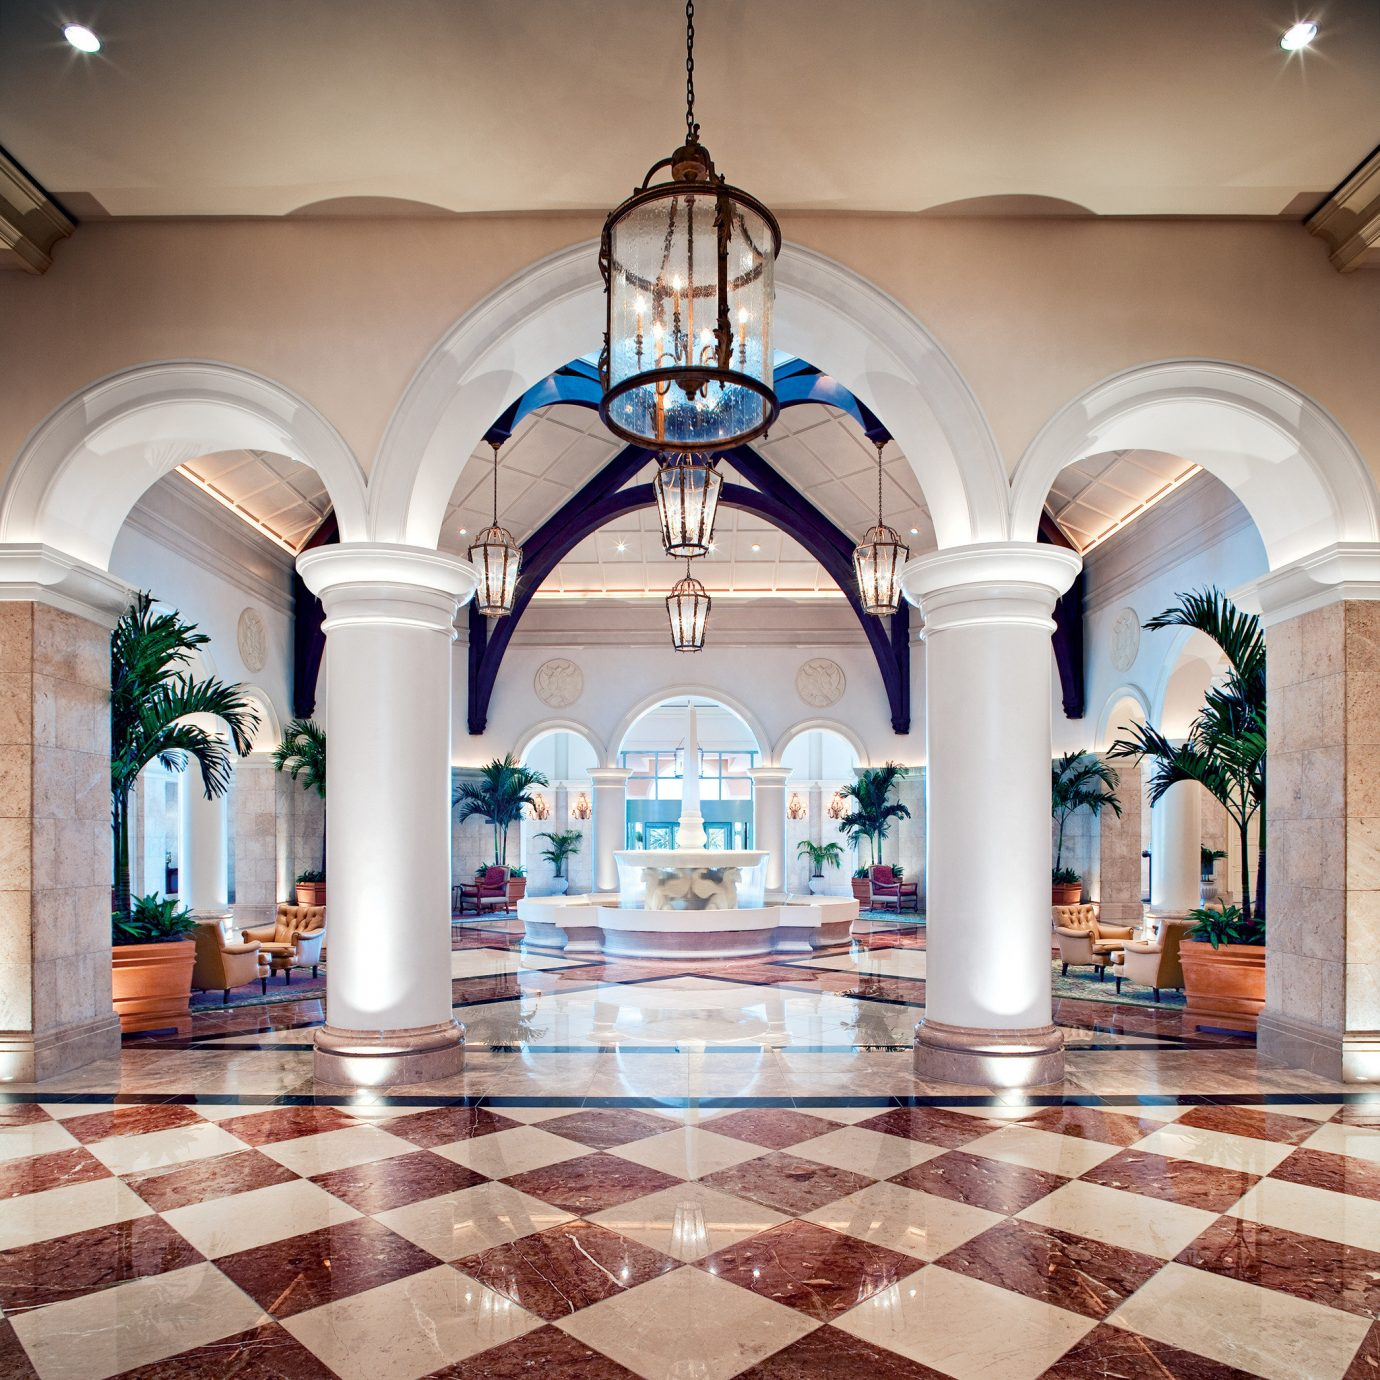 Lobby Architecture mansion arch column palace ballroom tile tiled colonnade